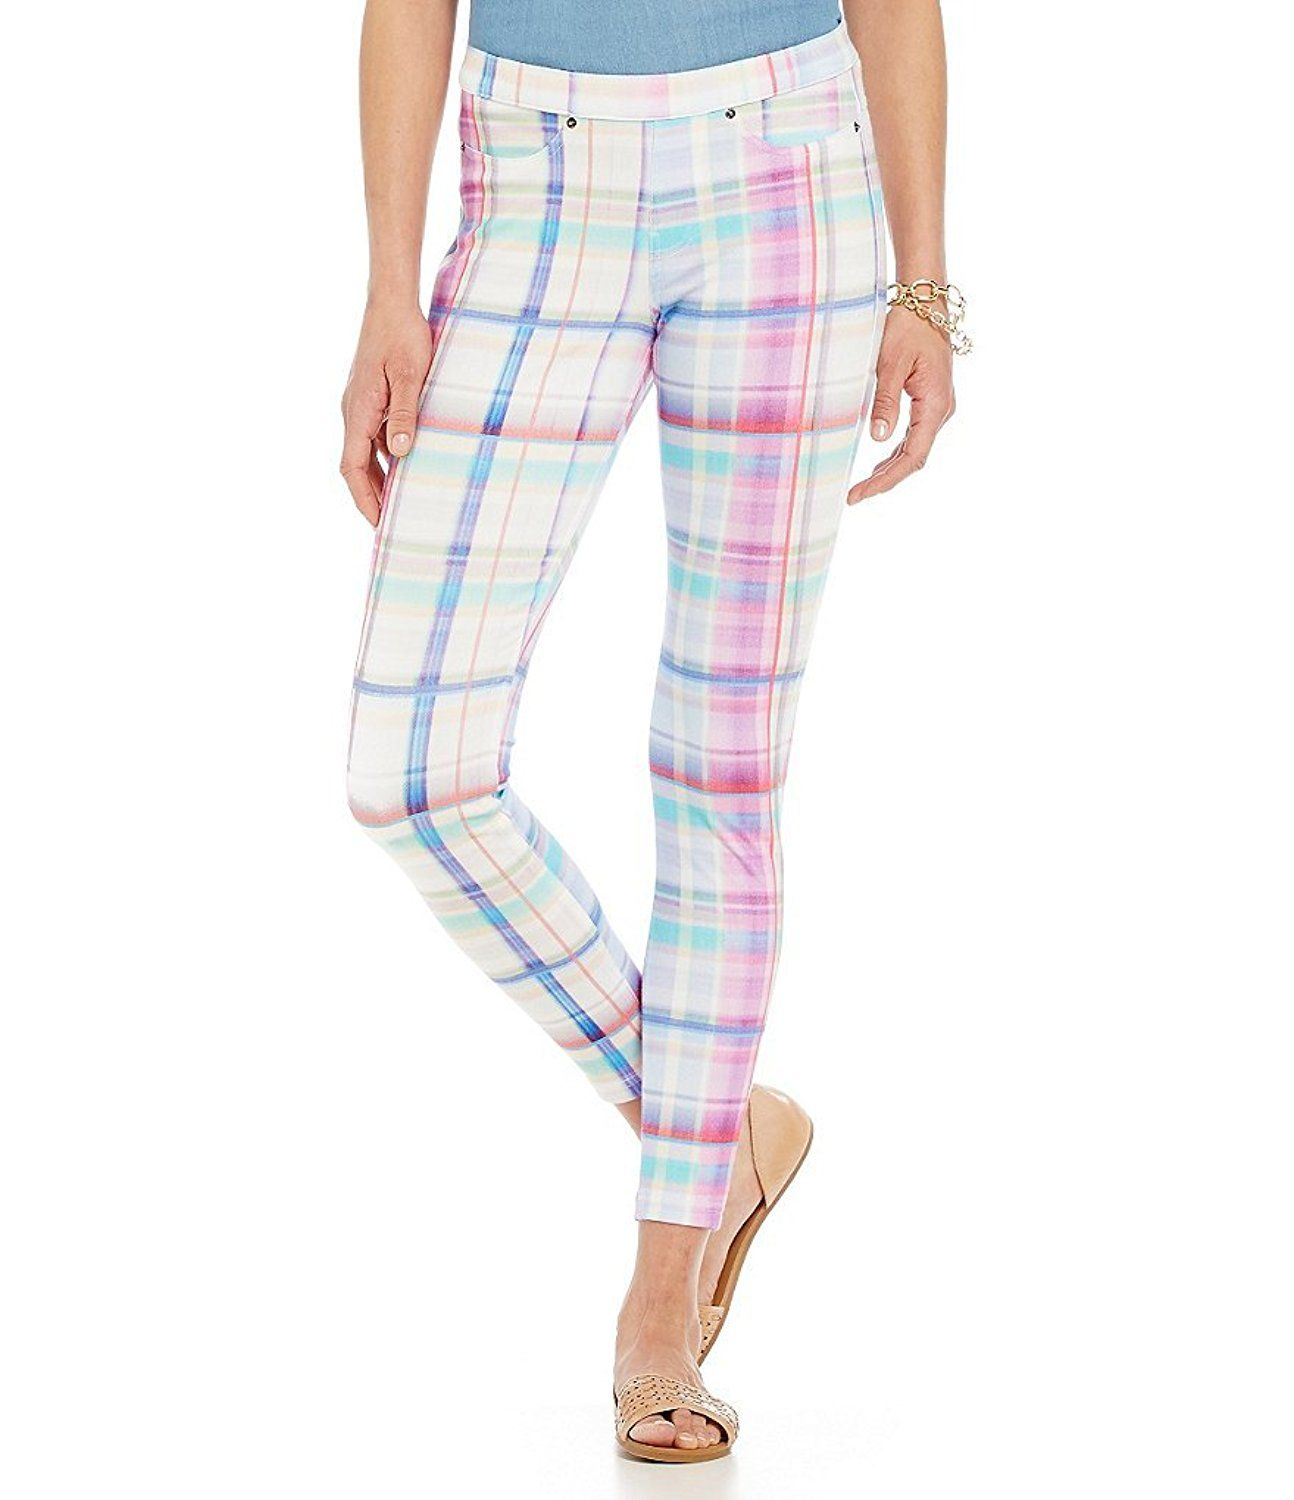 7eb48017213910 Hue Women's Madras Plaid Super Smooth Denim Skimmer Leggings >>> Check out  the image by visiting the link.